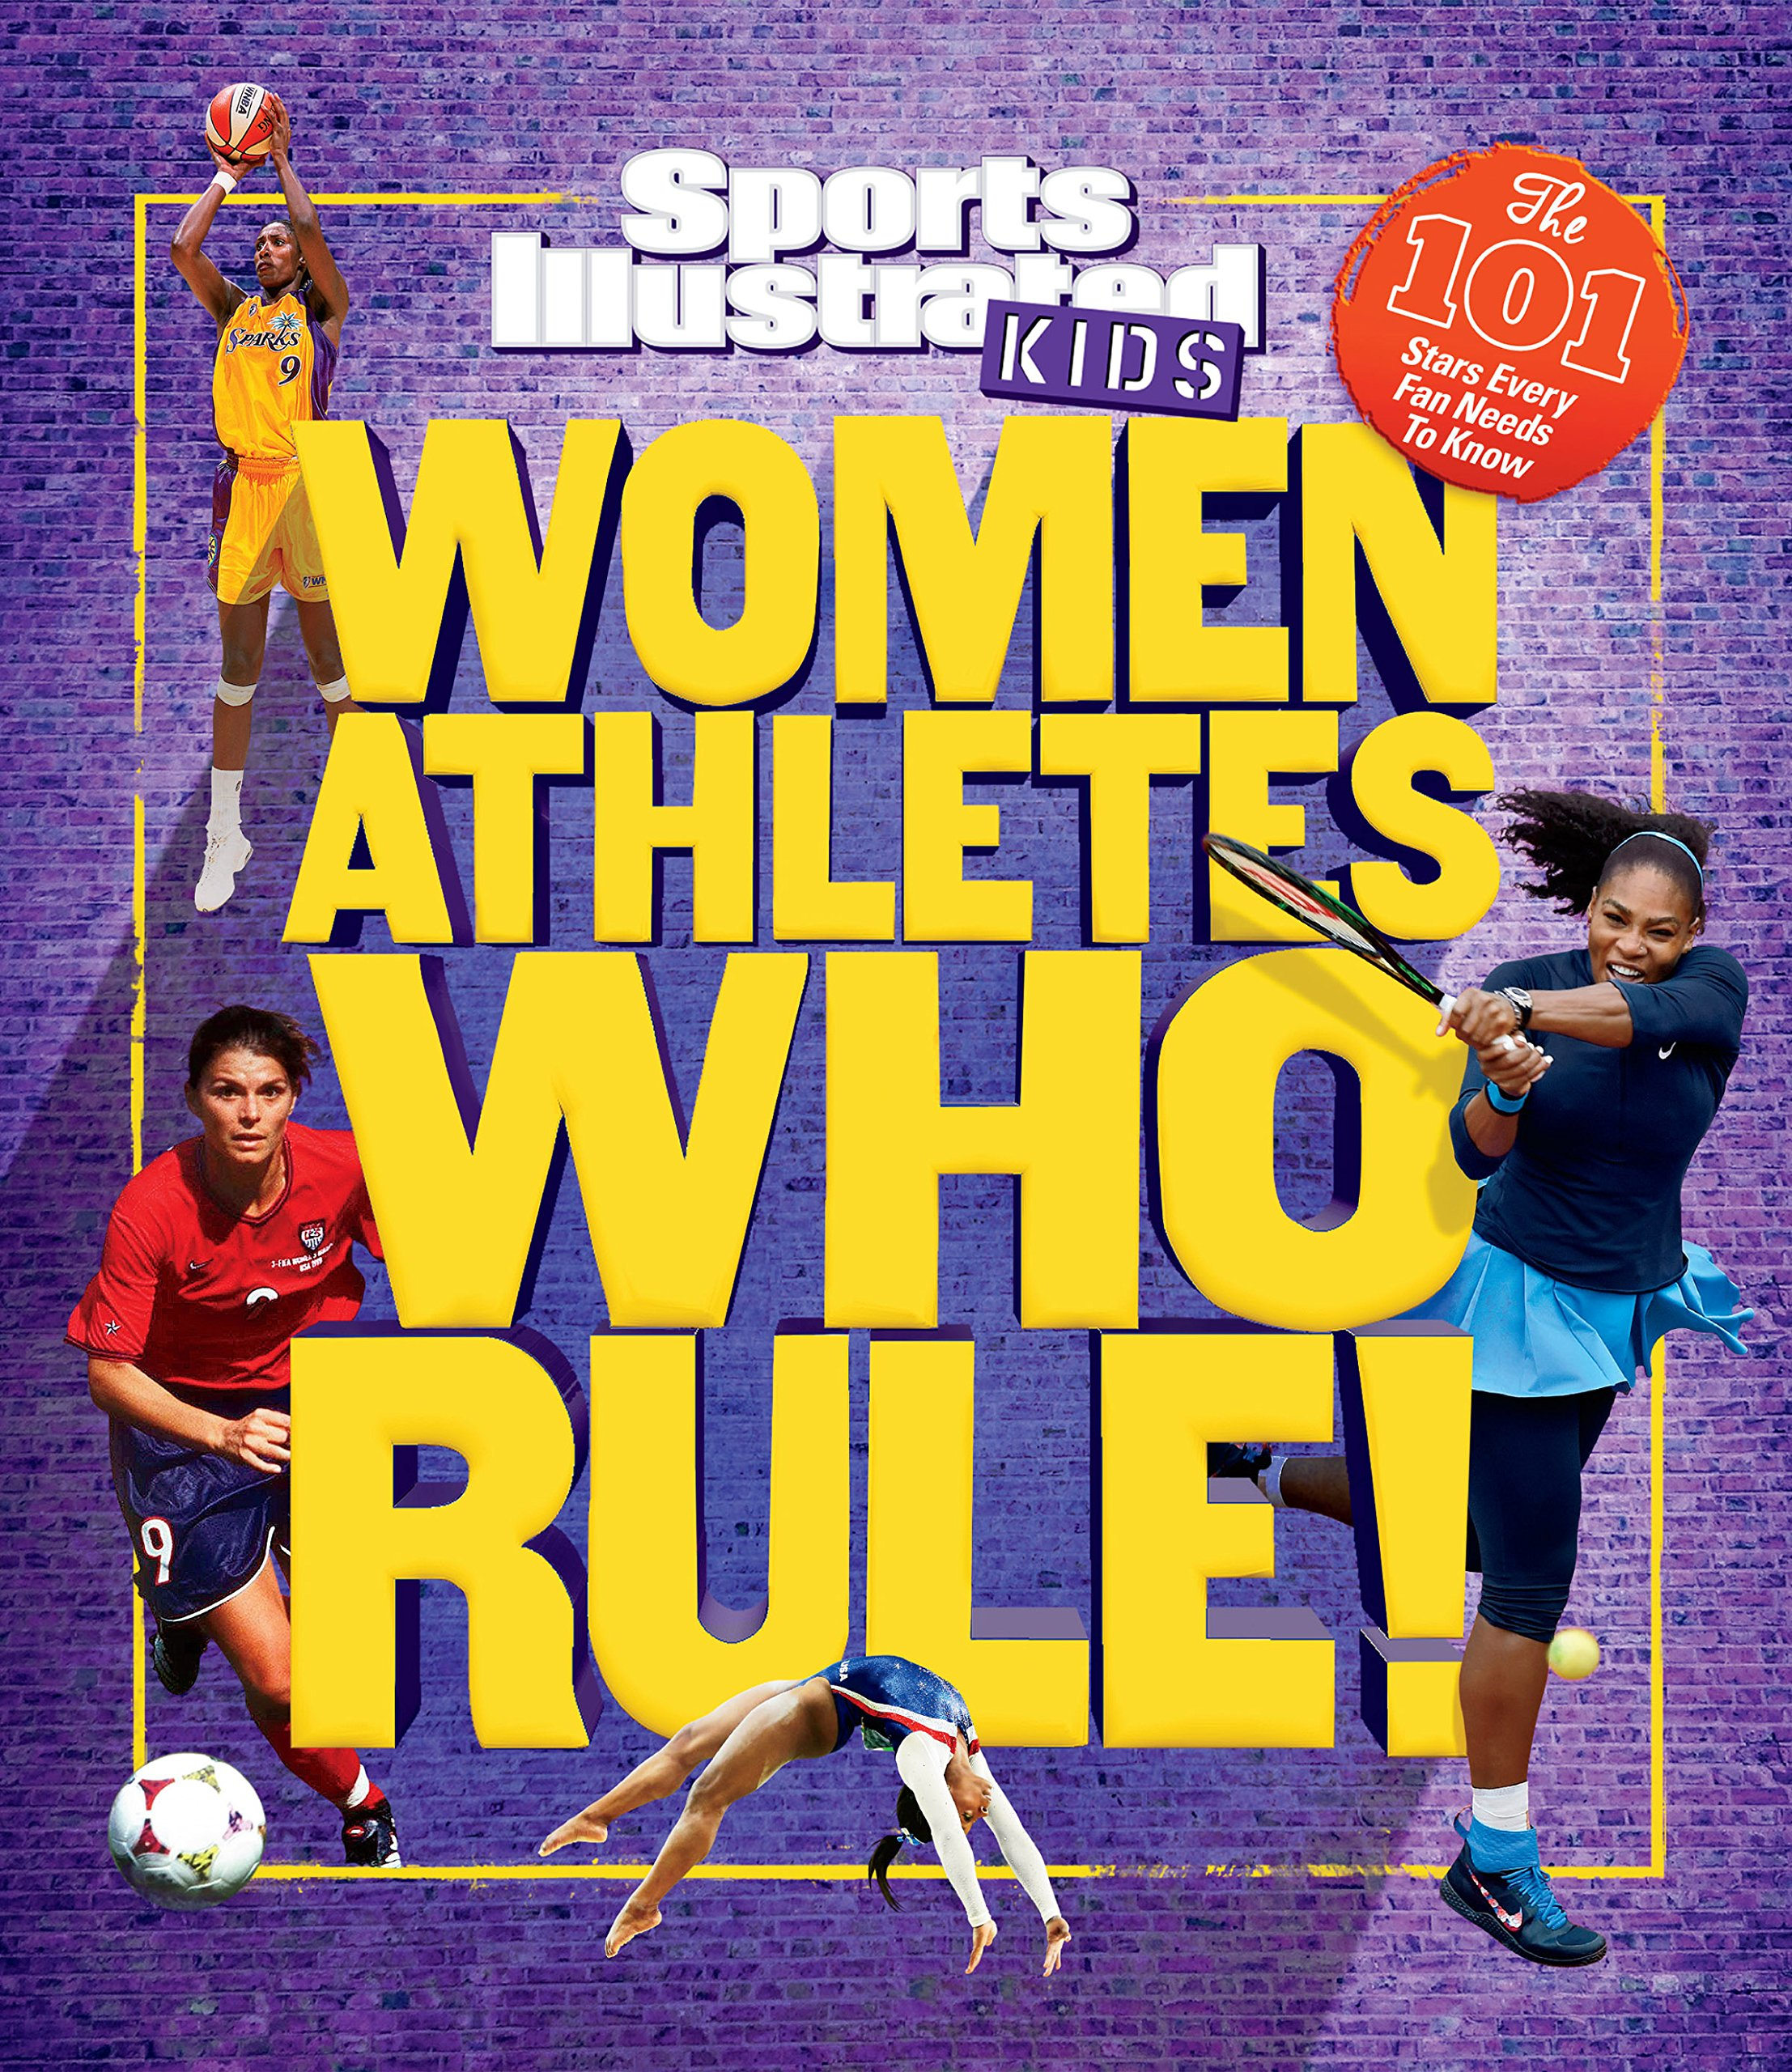 Women Athletes Who Rule!: The 101 Stars Every Fan Needs to Know (Sports Illustrated Kids) by Sports Illustrated Kids (Image #1)